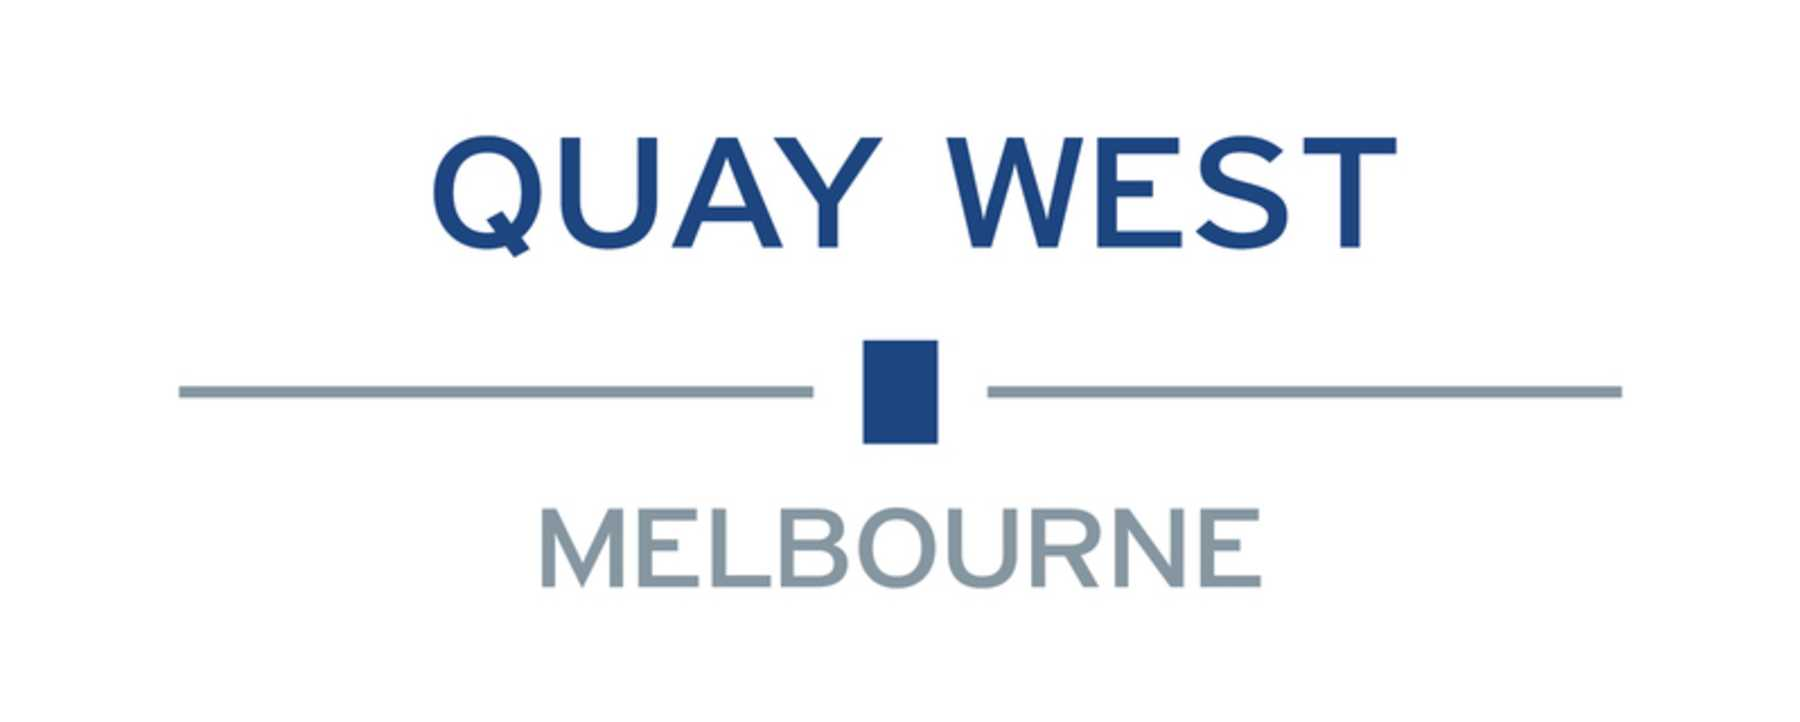 Quay West Suites Melbourne logo